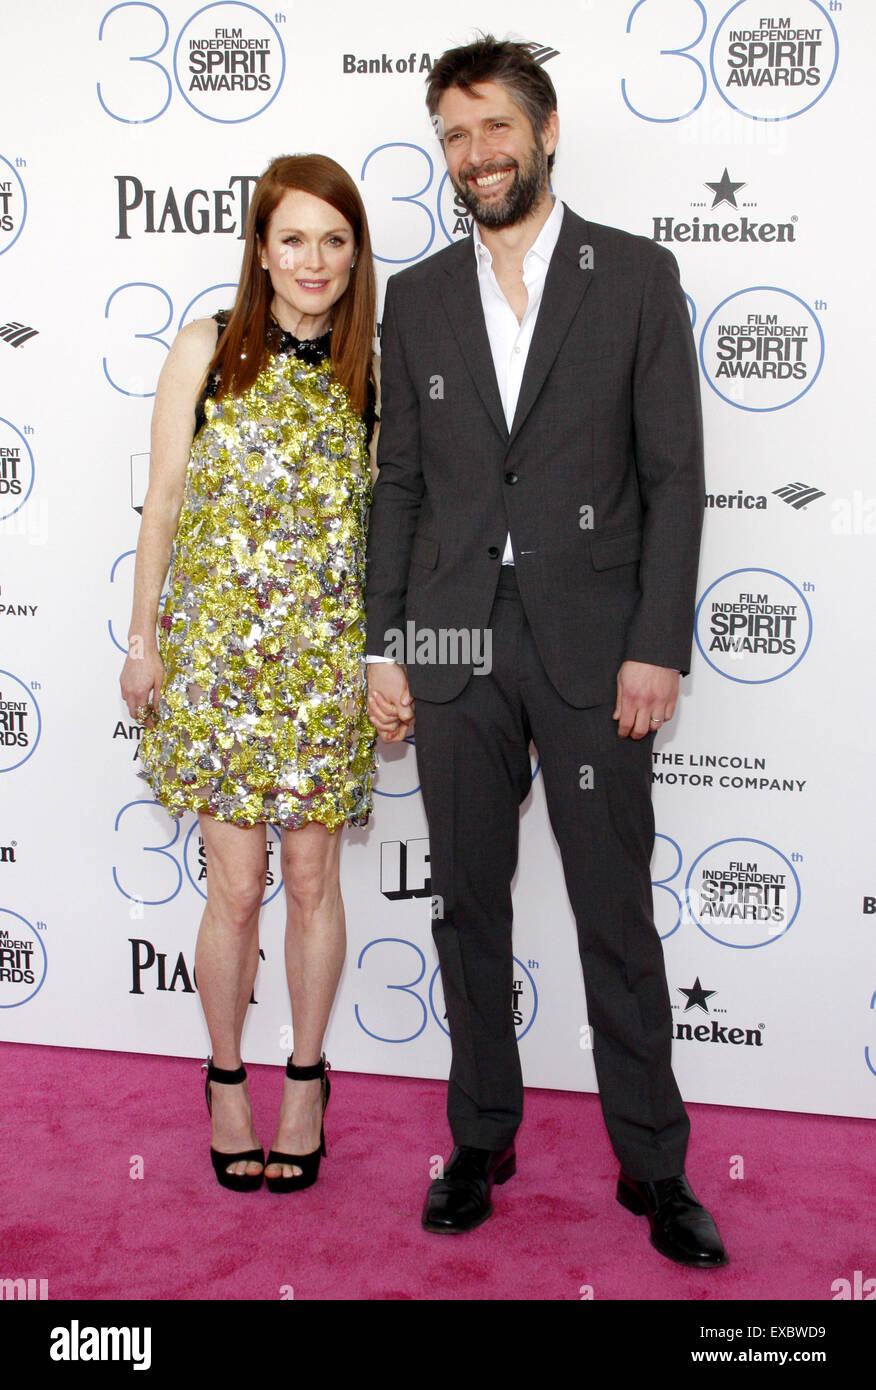 Julianne Moore and Bart Freundlich at the 2015 Film Independent Spirit Awards. - Stock Image